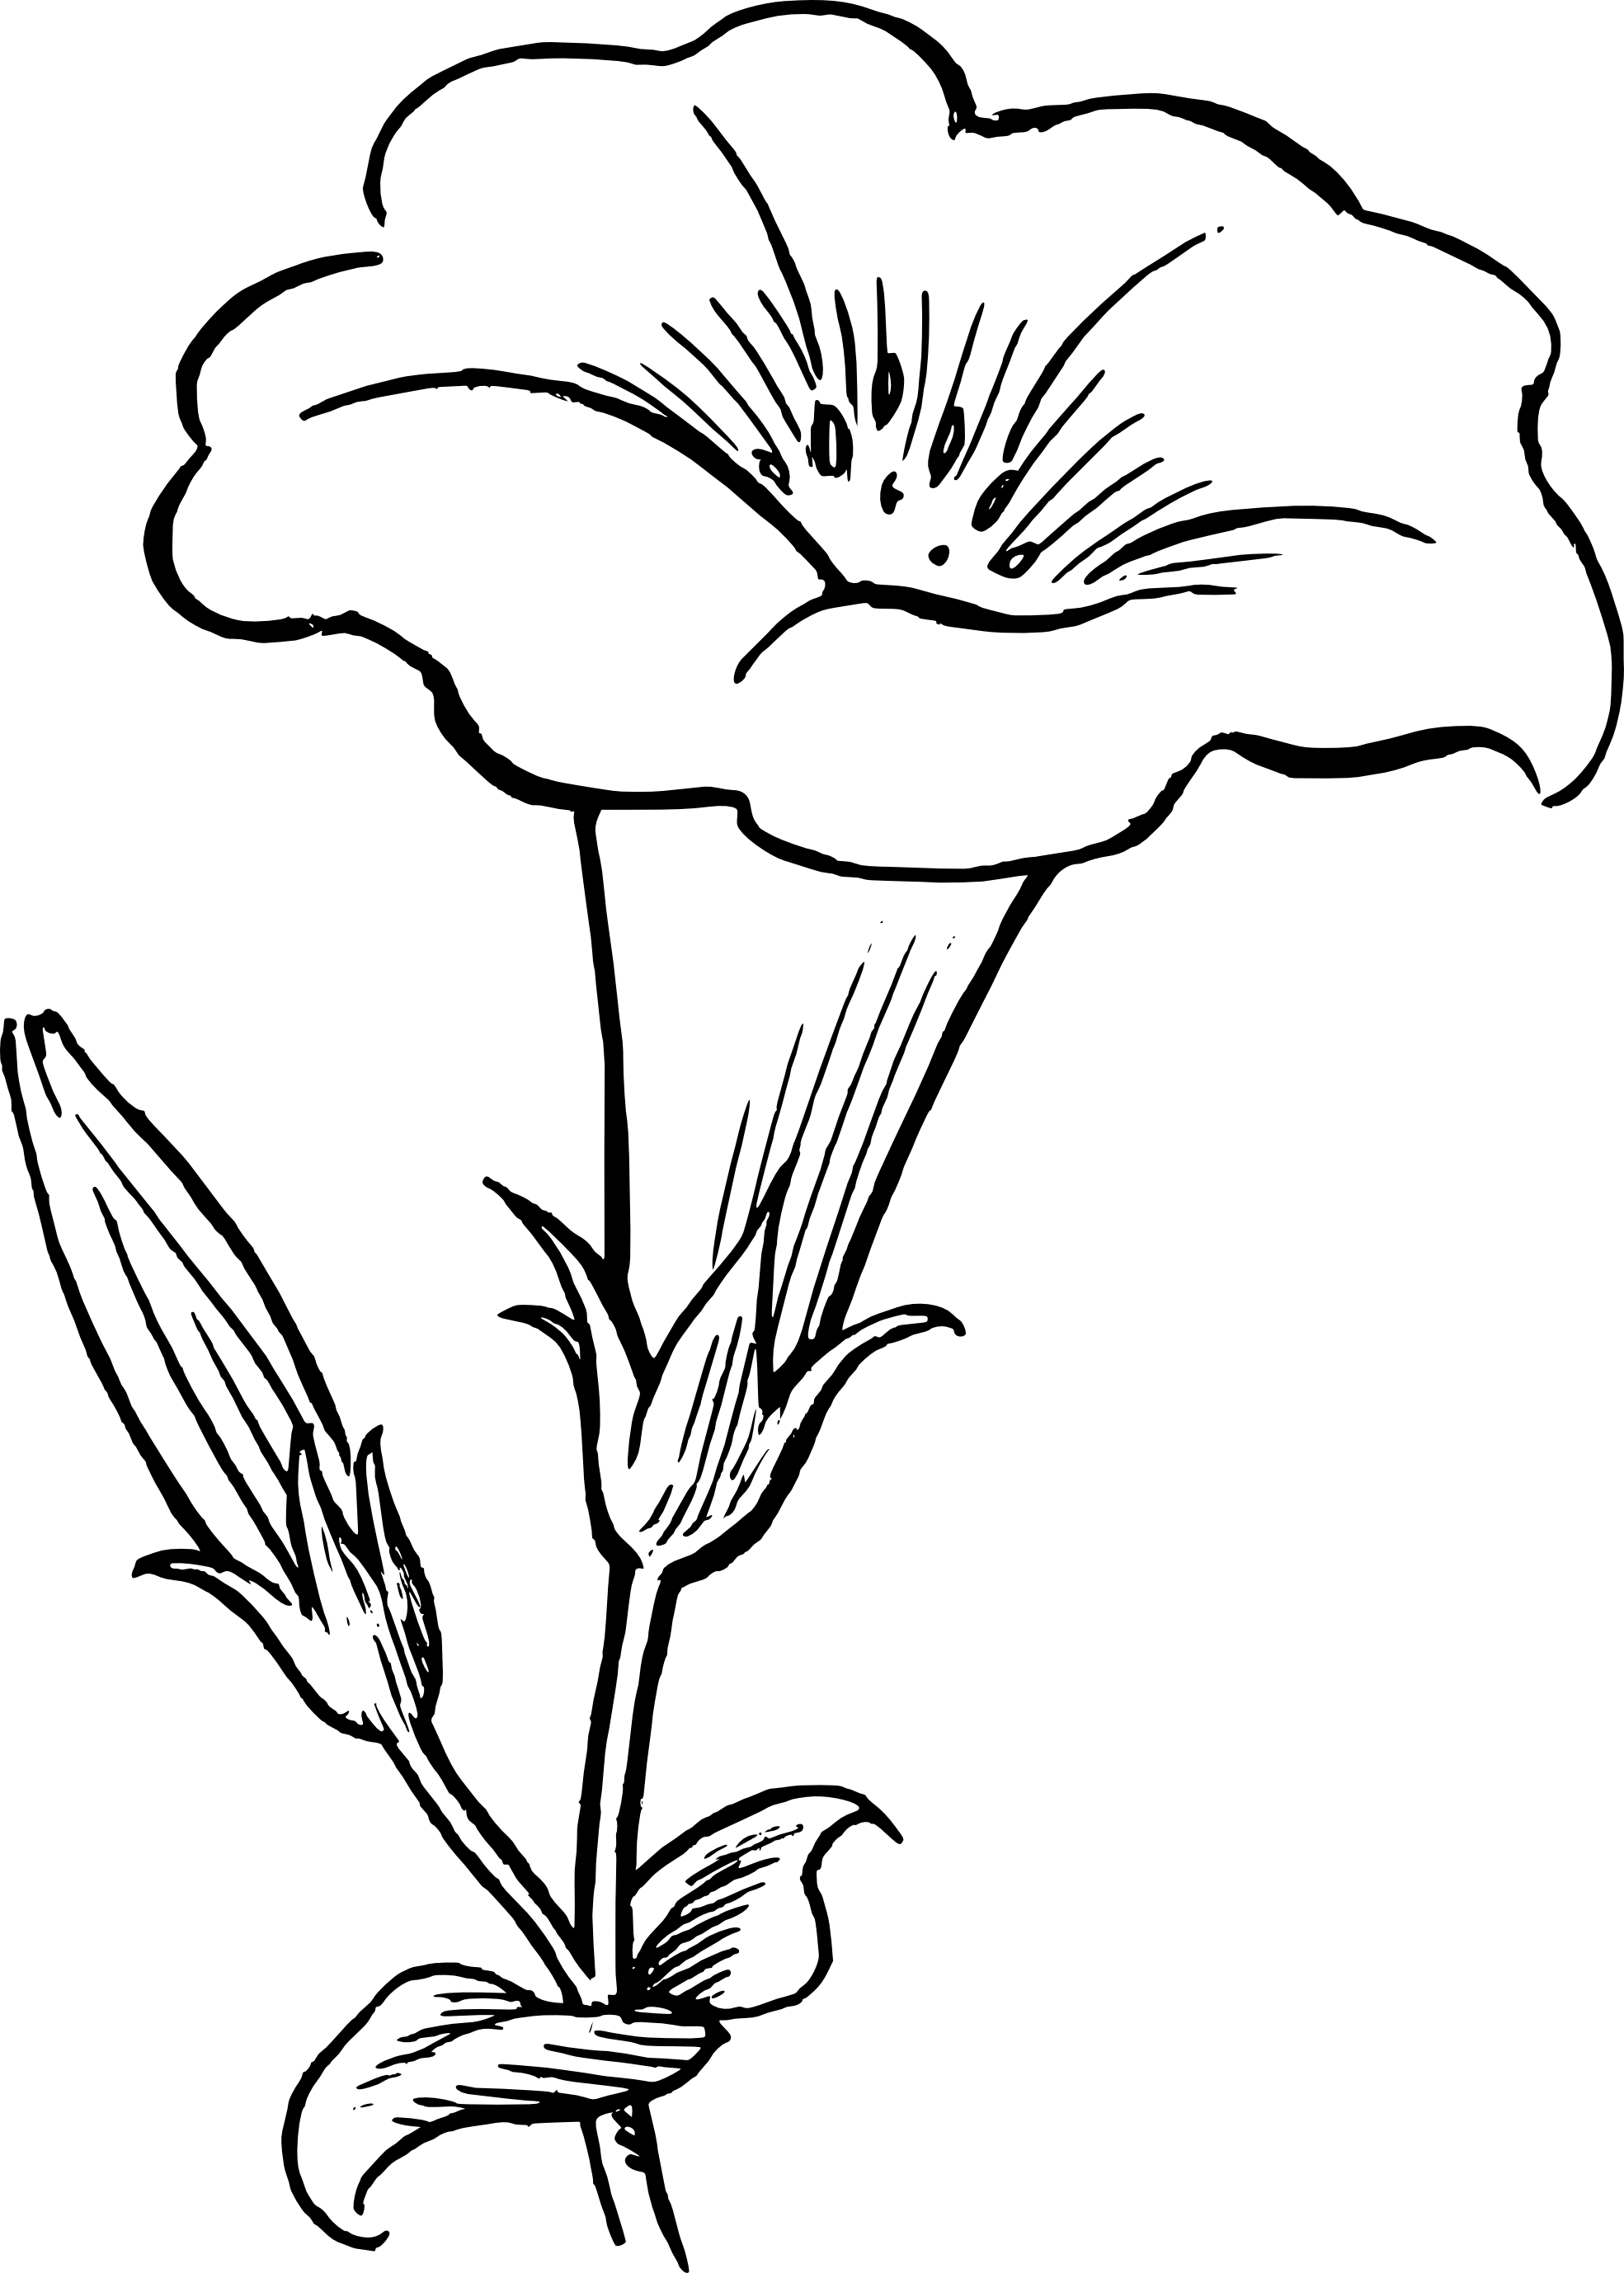 Black and white flower drawing clipart panda free clipart images black and white flower drawing clipart panda free clipart images mightylinksfo